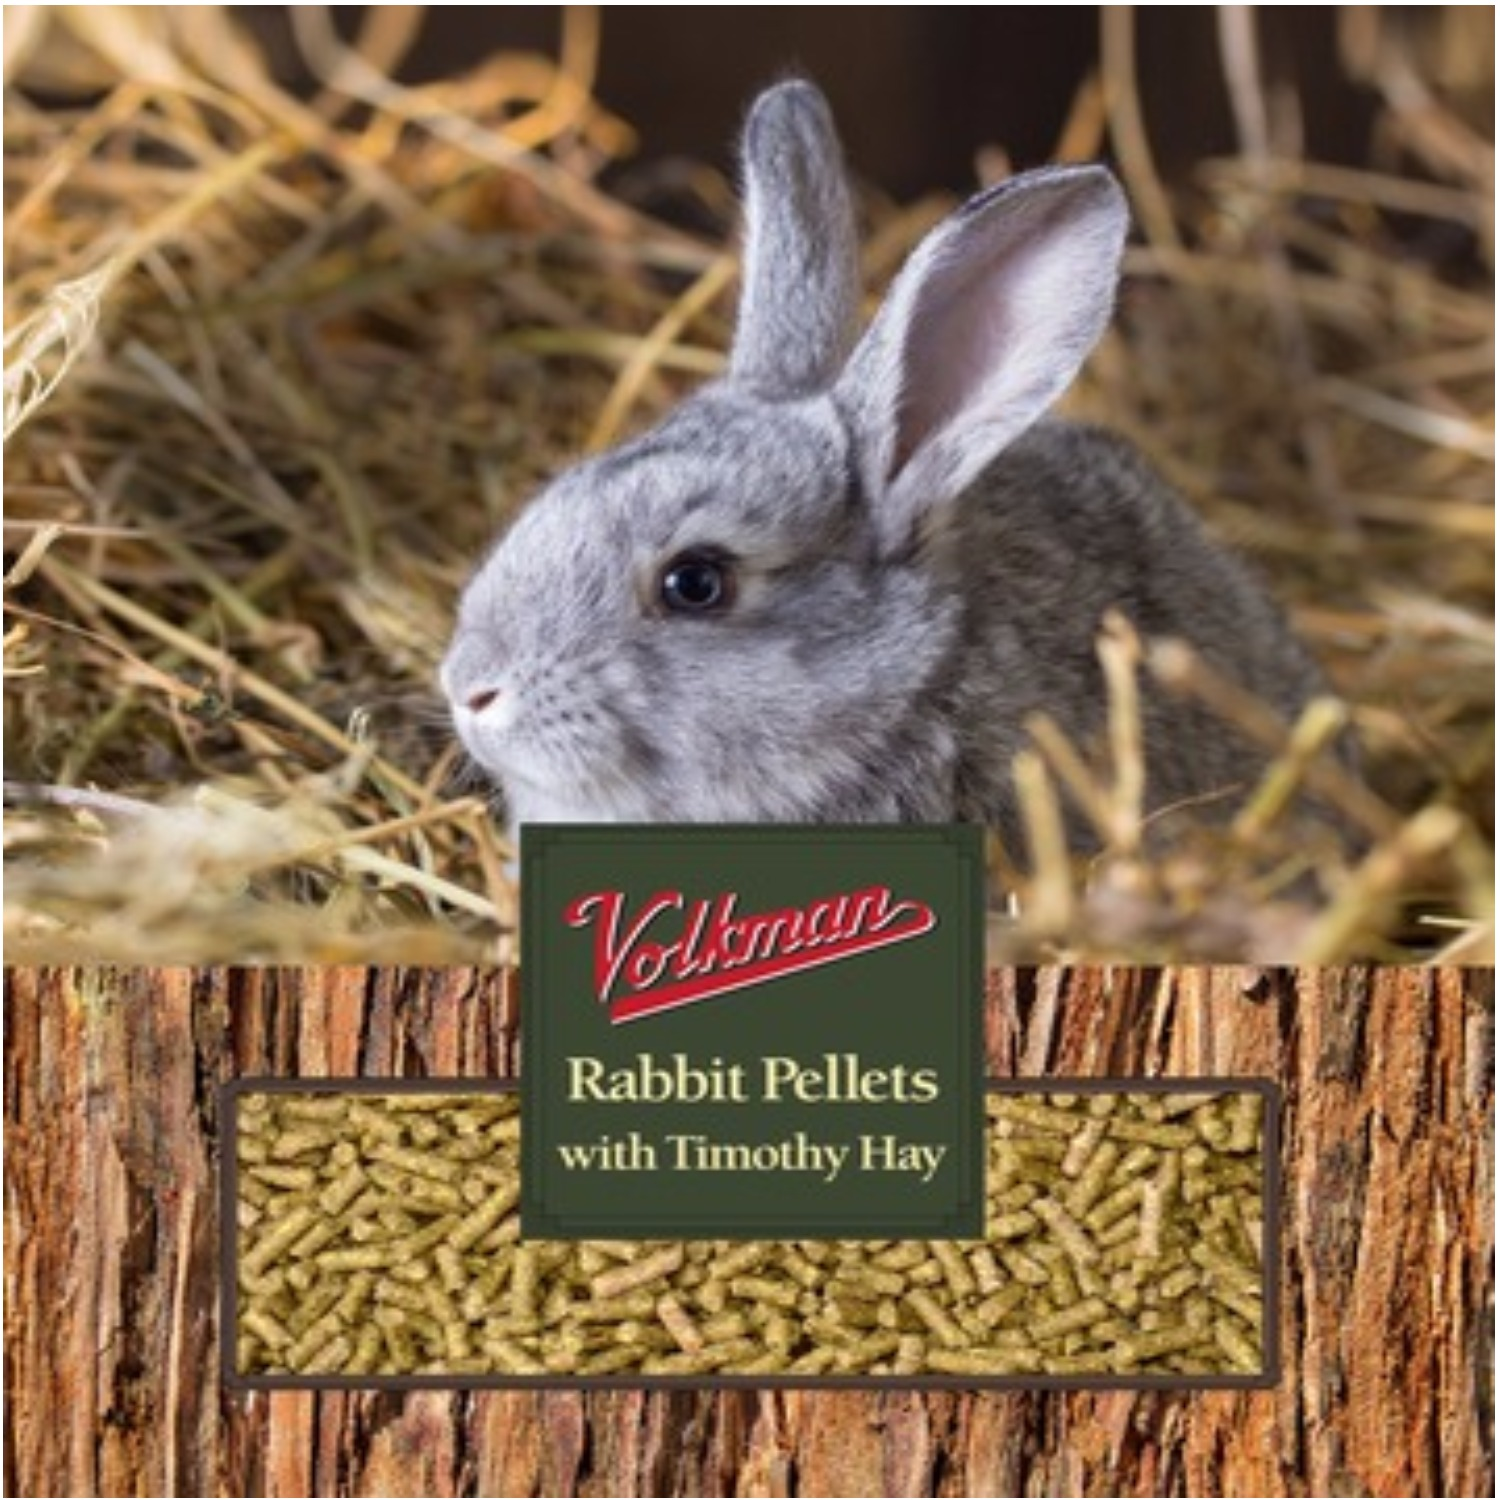 Volkman Pellets with Timothy Hay Rabbit Food Image